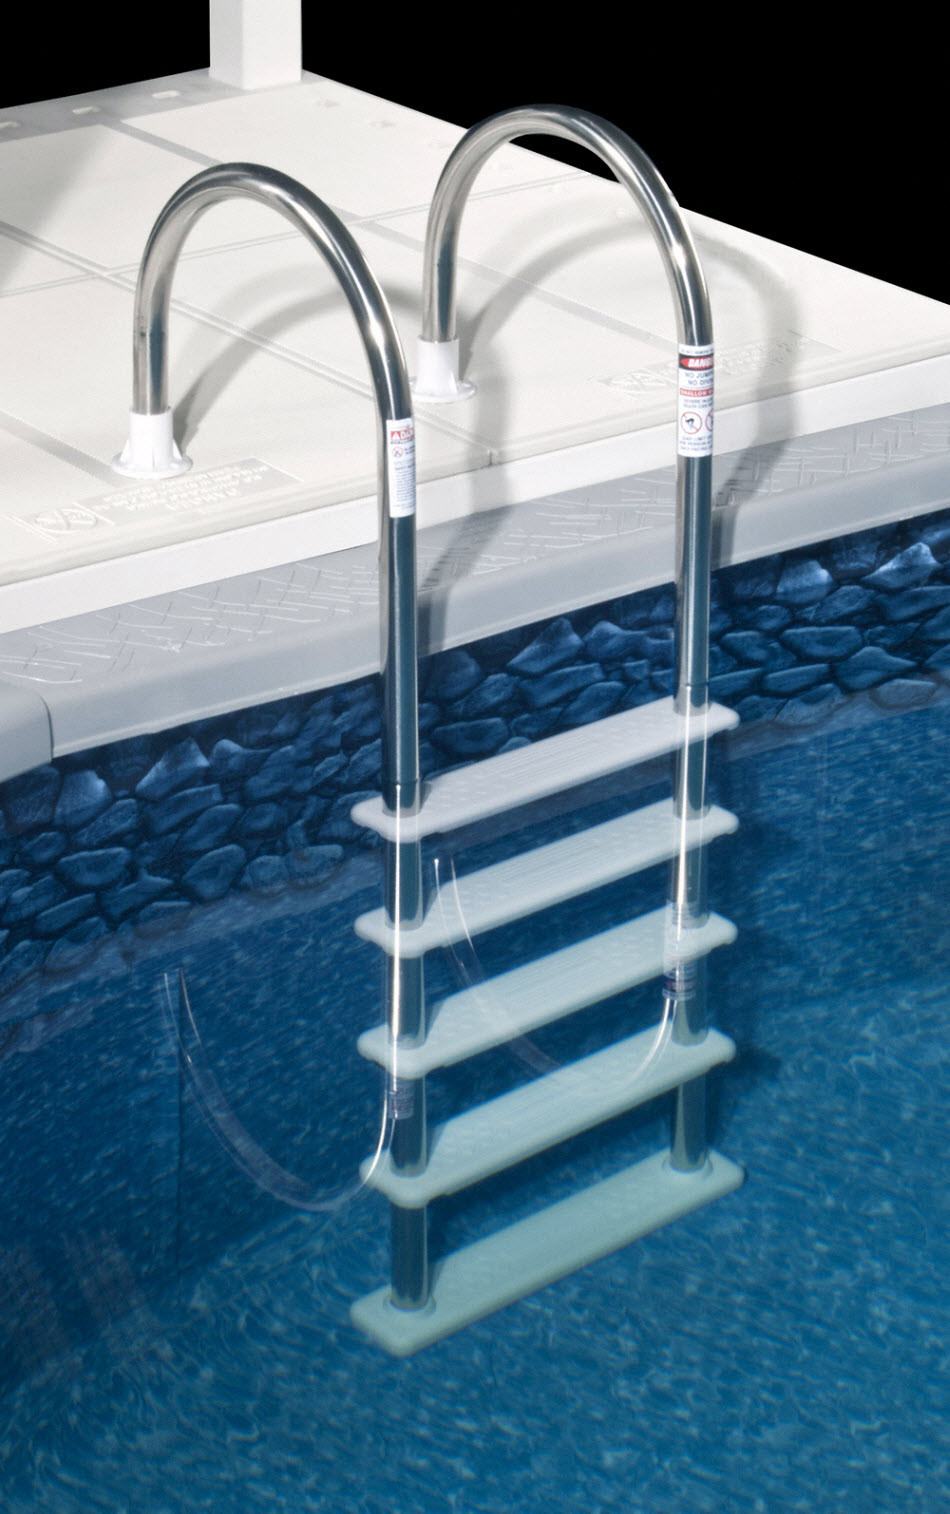 Best ideas about Inground Pool Ladder . Save or Pin Inground Pool Steps And Ladders – Swimming pools photos Now.